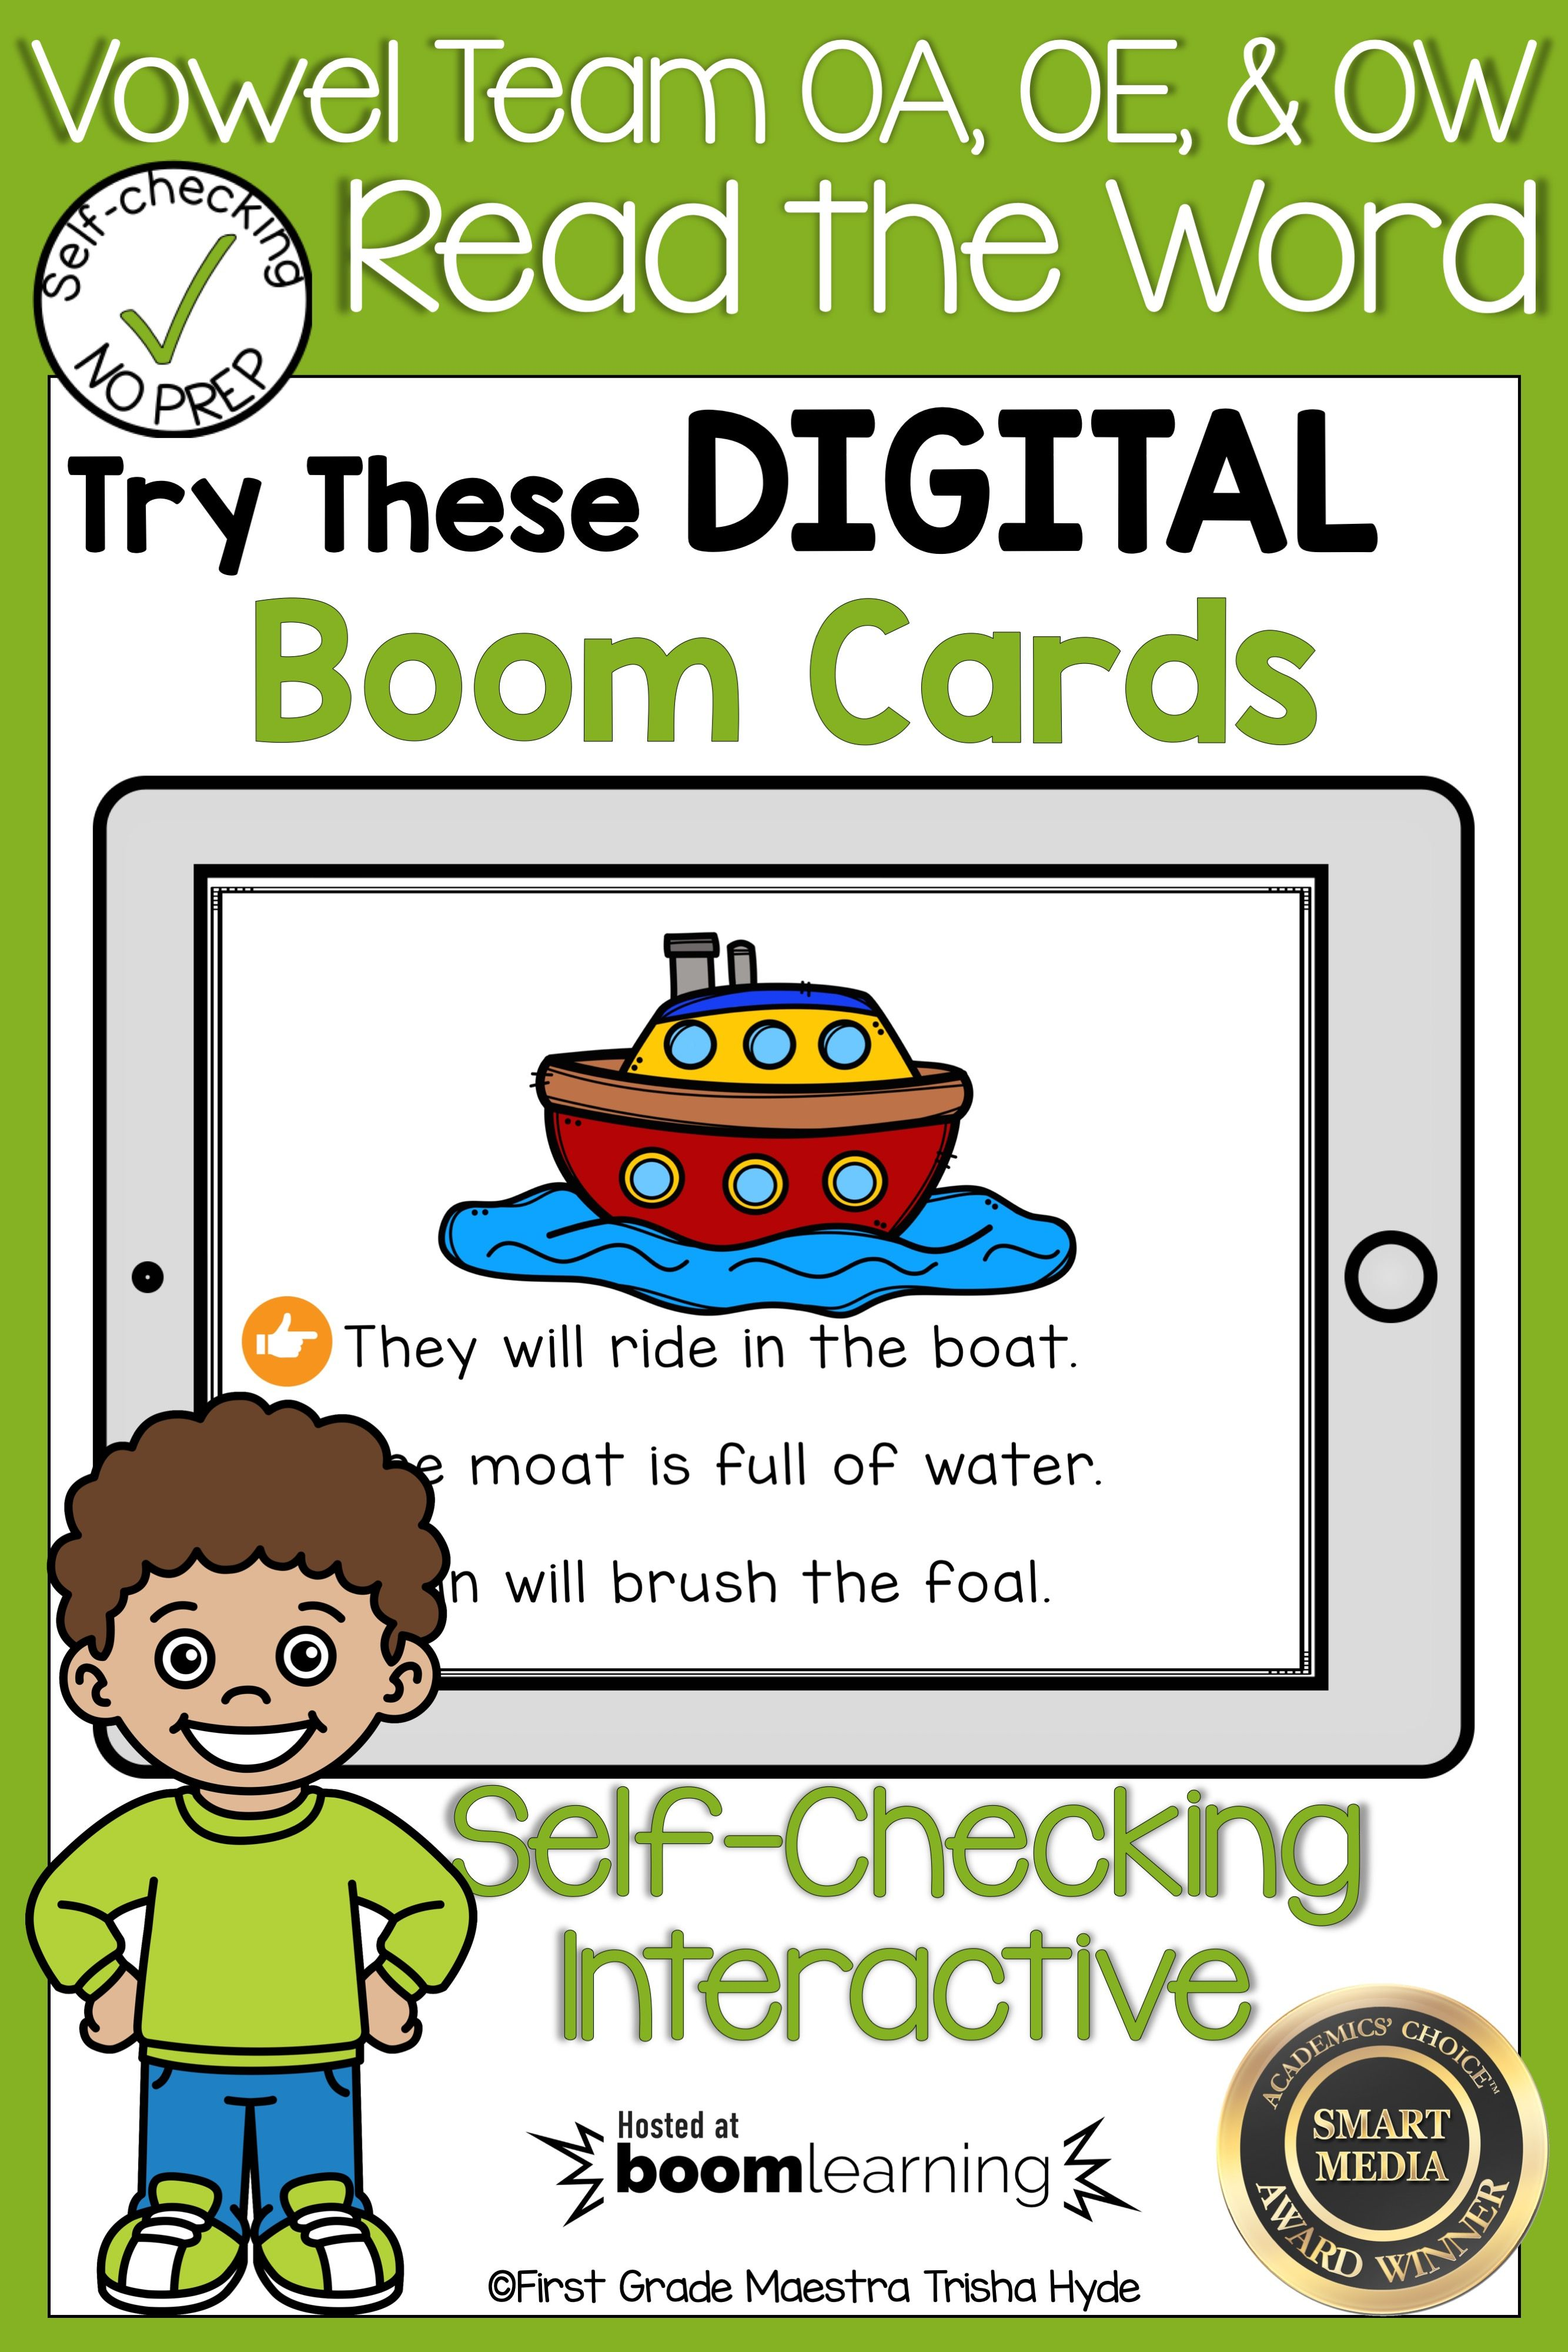 Boom Cards Vowel Team Oa Oe And Ow Read The Word With